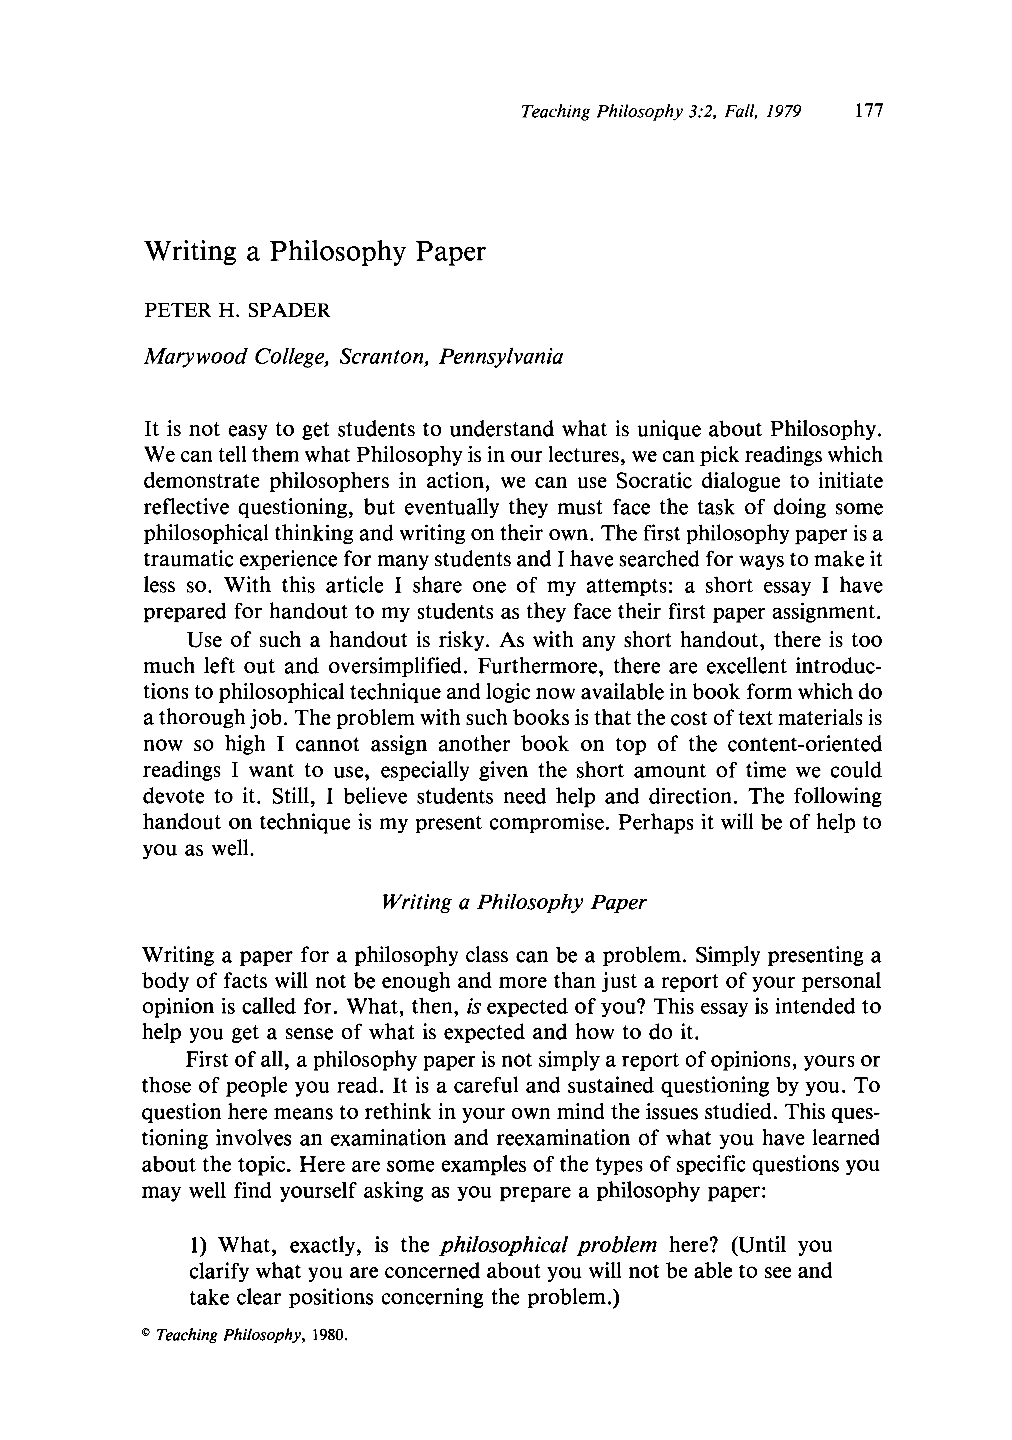 personal philosophy essays what is a teaching philosophy statement a teaching philosophy